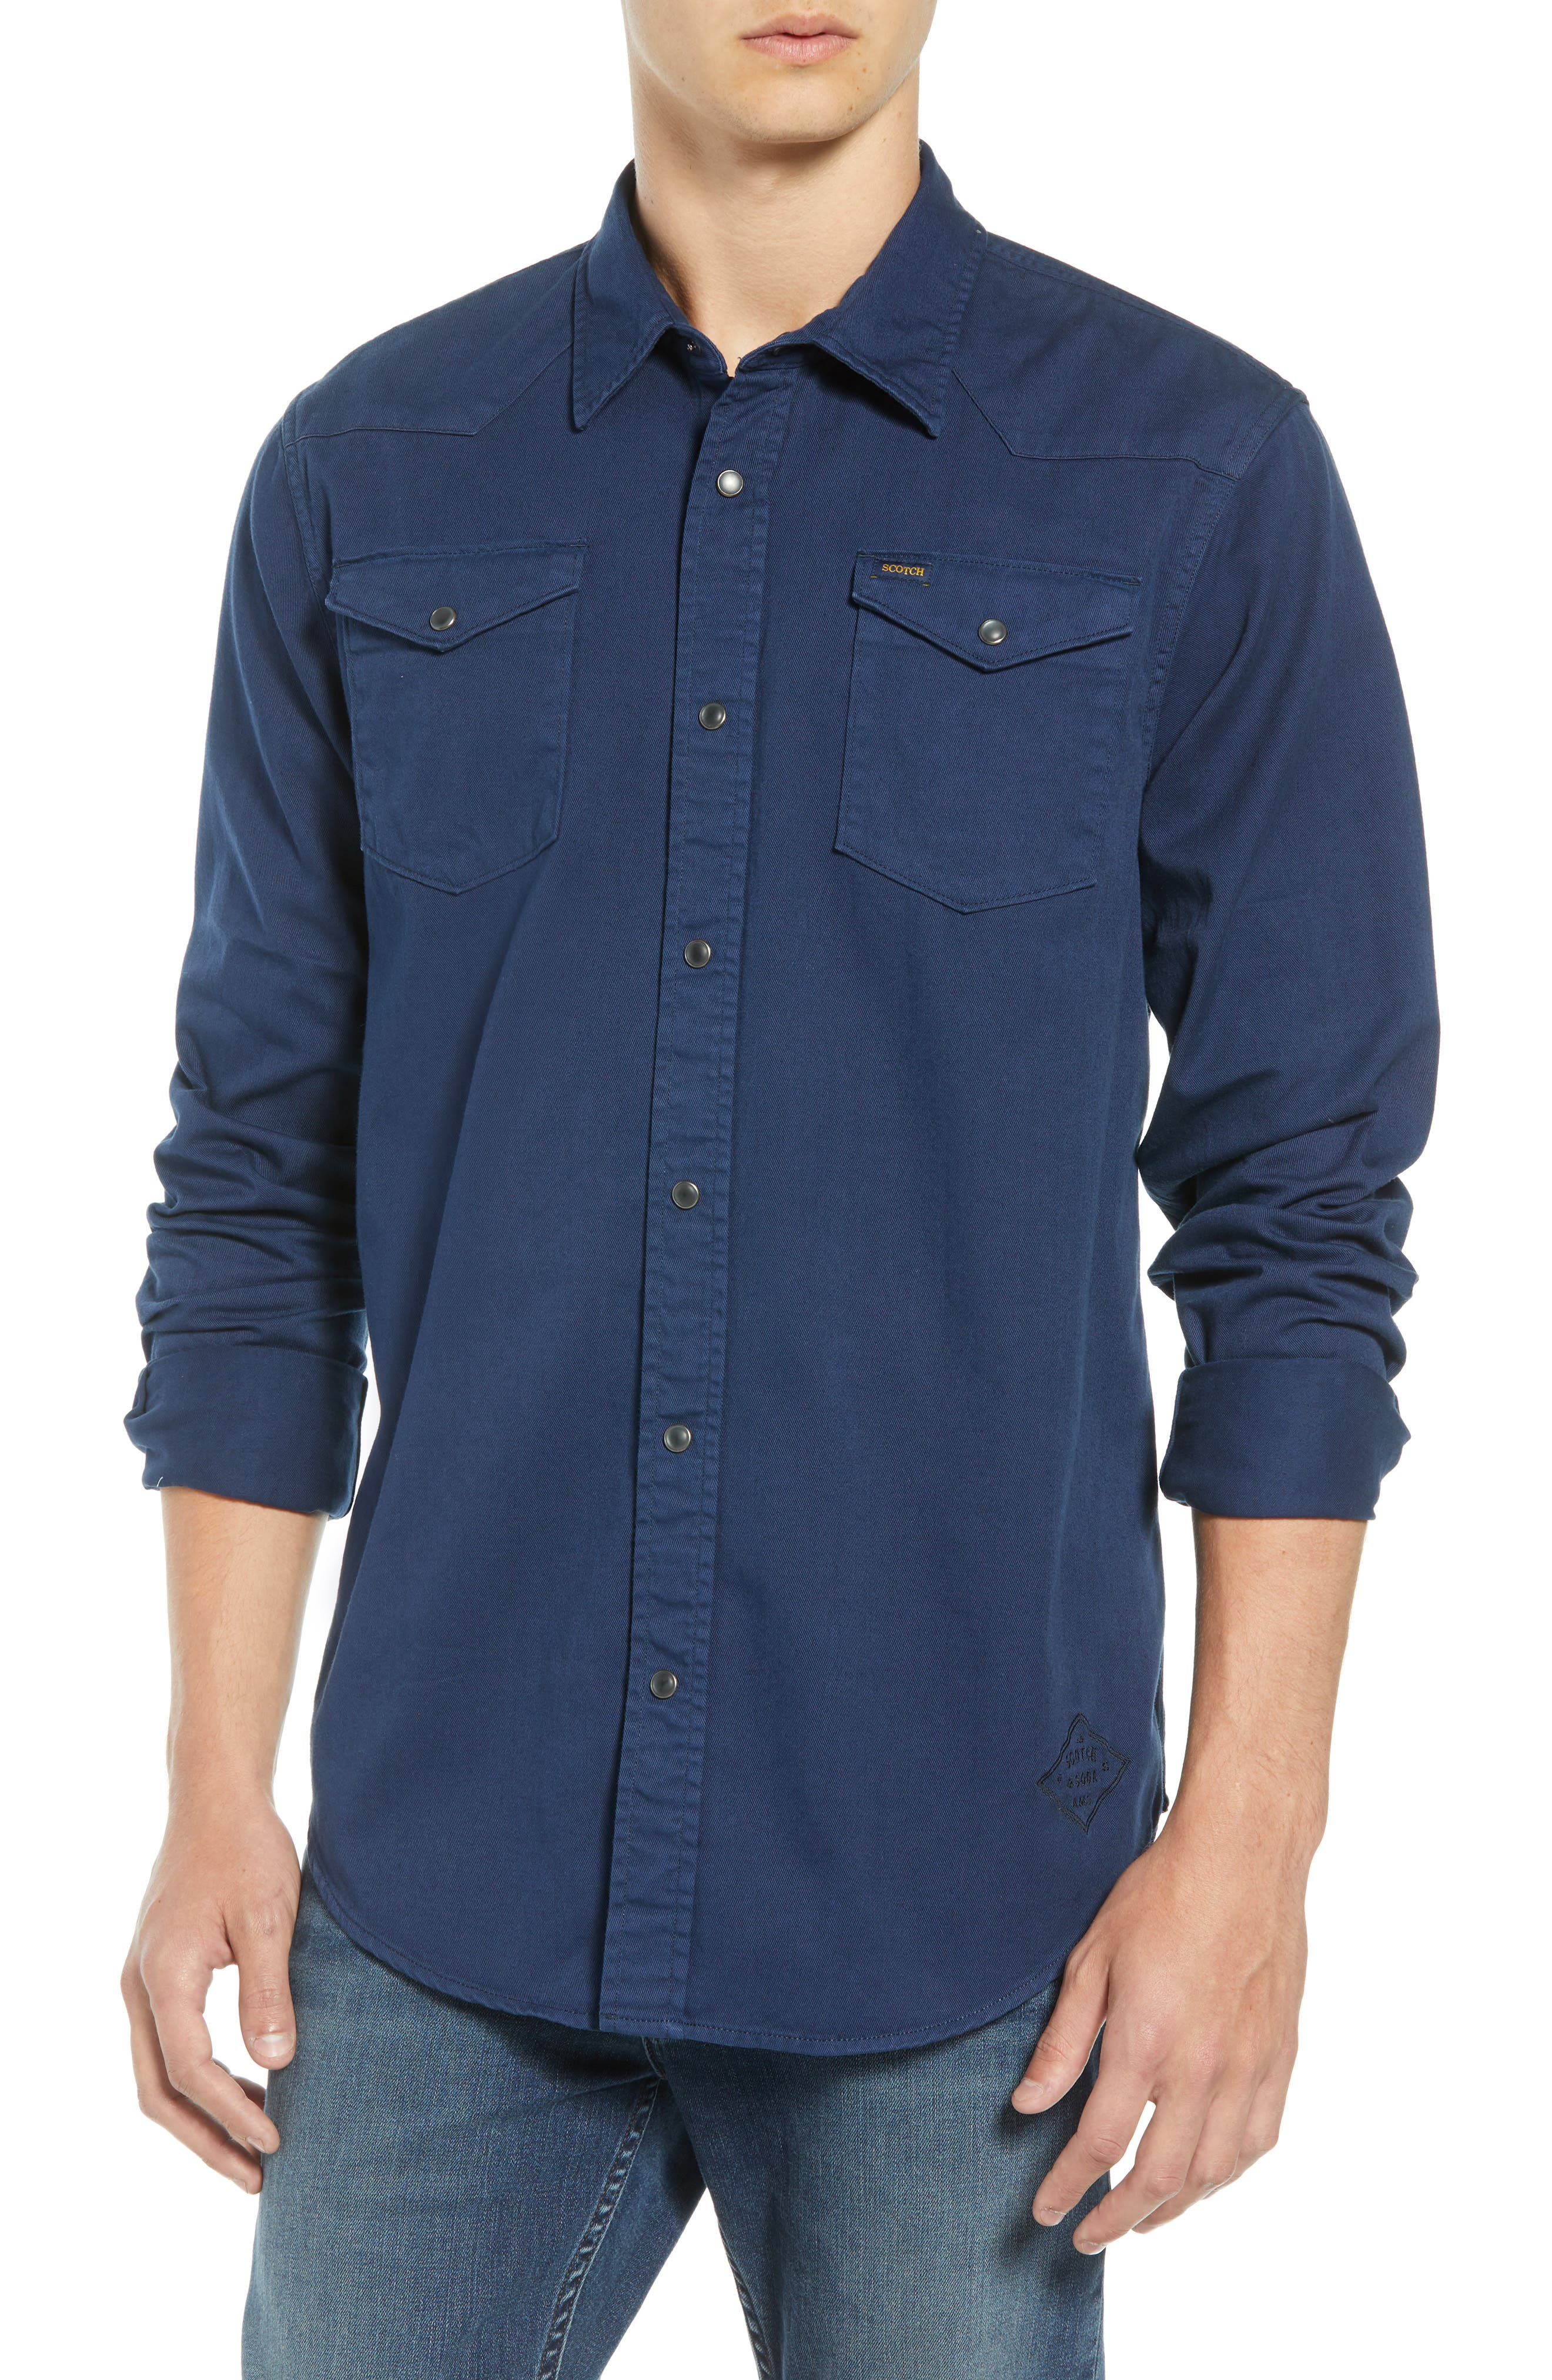 Regular Fit Garment Dyed Shirt,                             Main thumbnail 1, color,                             DENIM BLUE